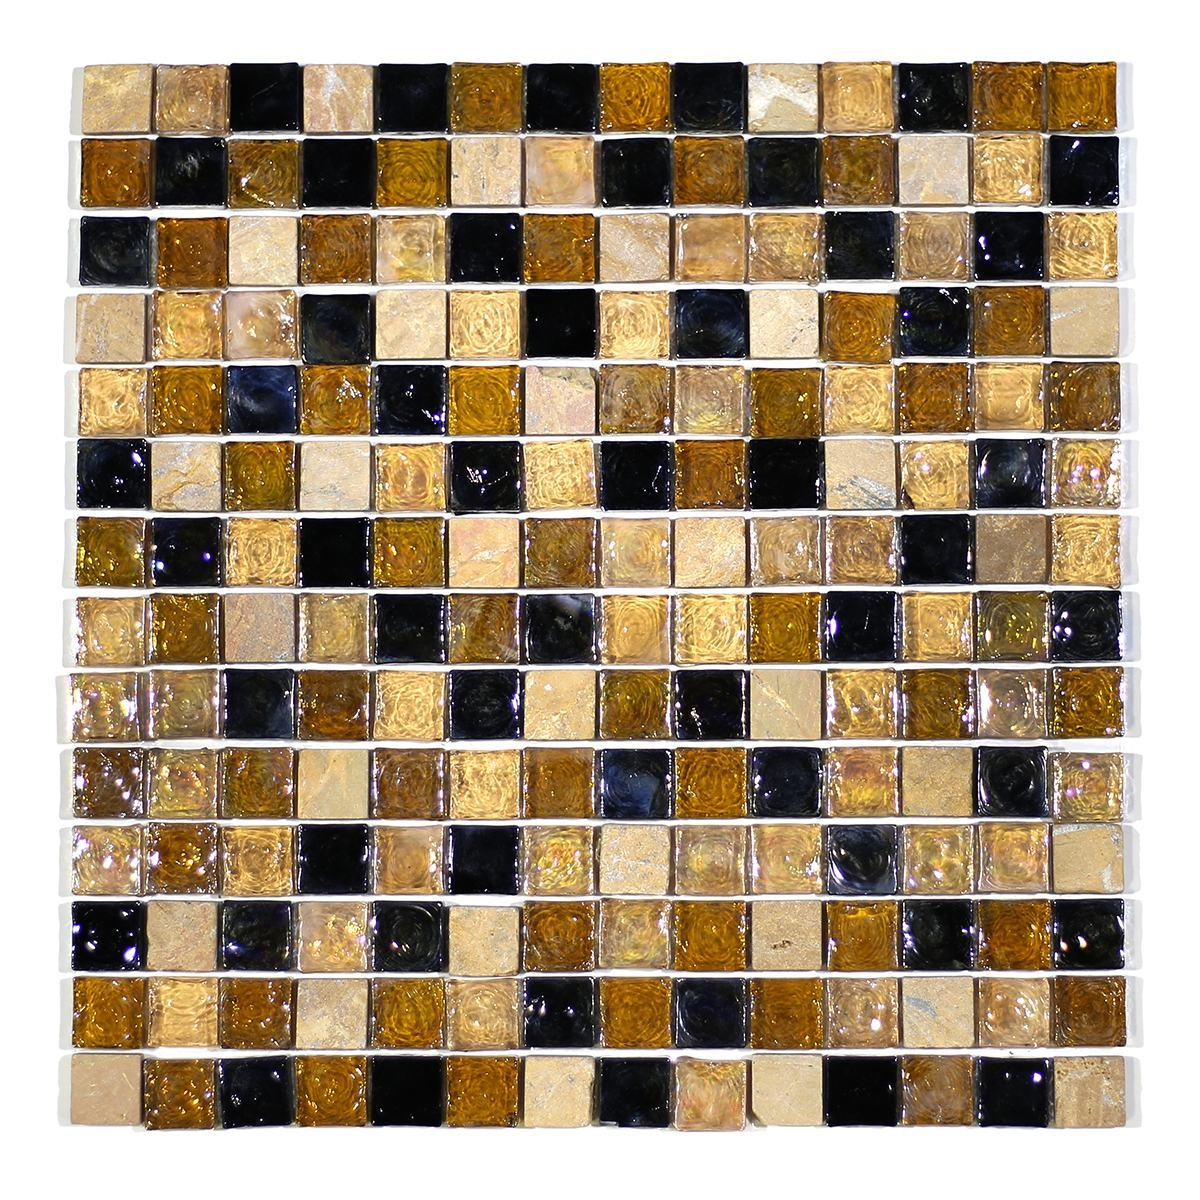 "MA11-LS 3/4"" SQUARE RECYCLE GLASS AND STONE MOSAIC BLEND"